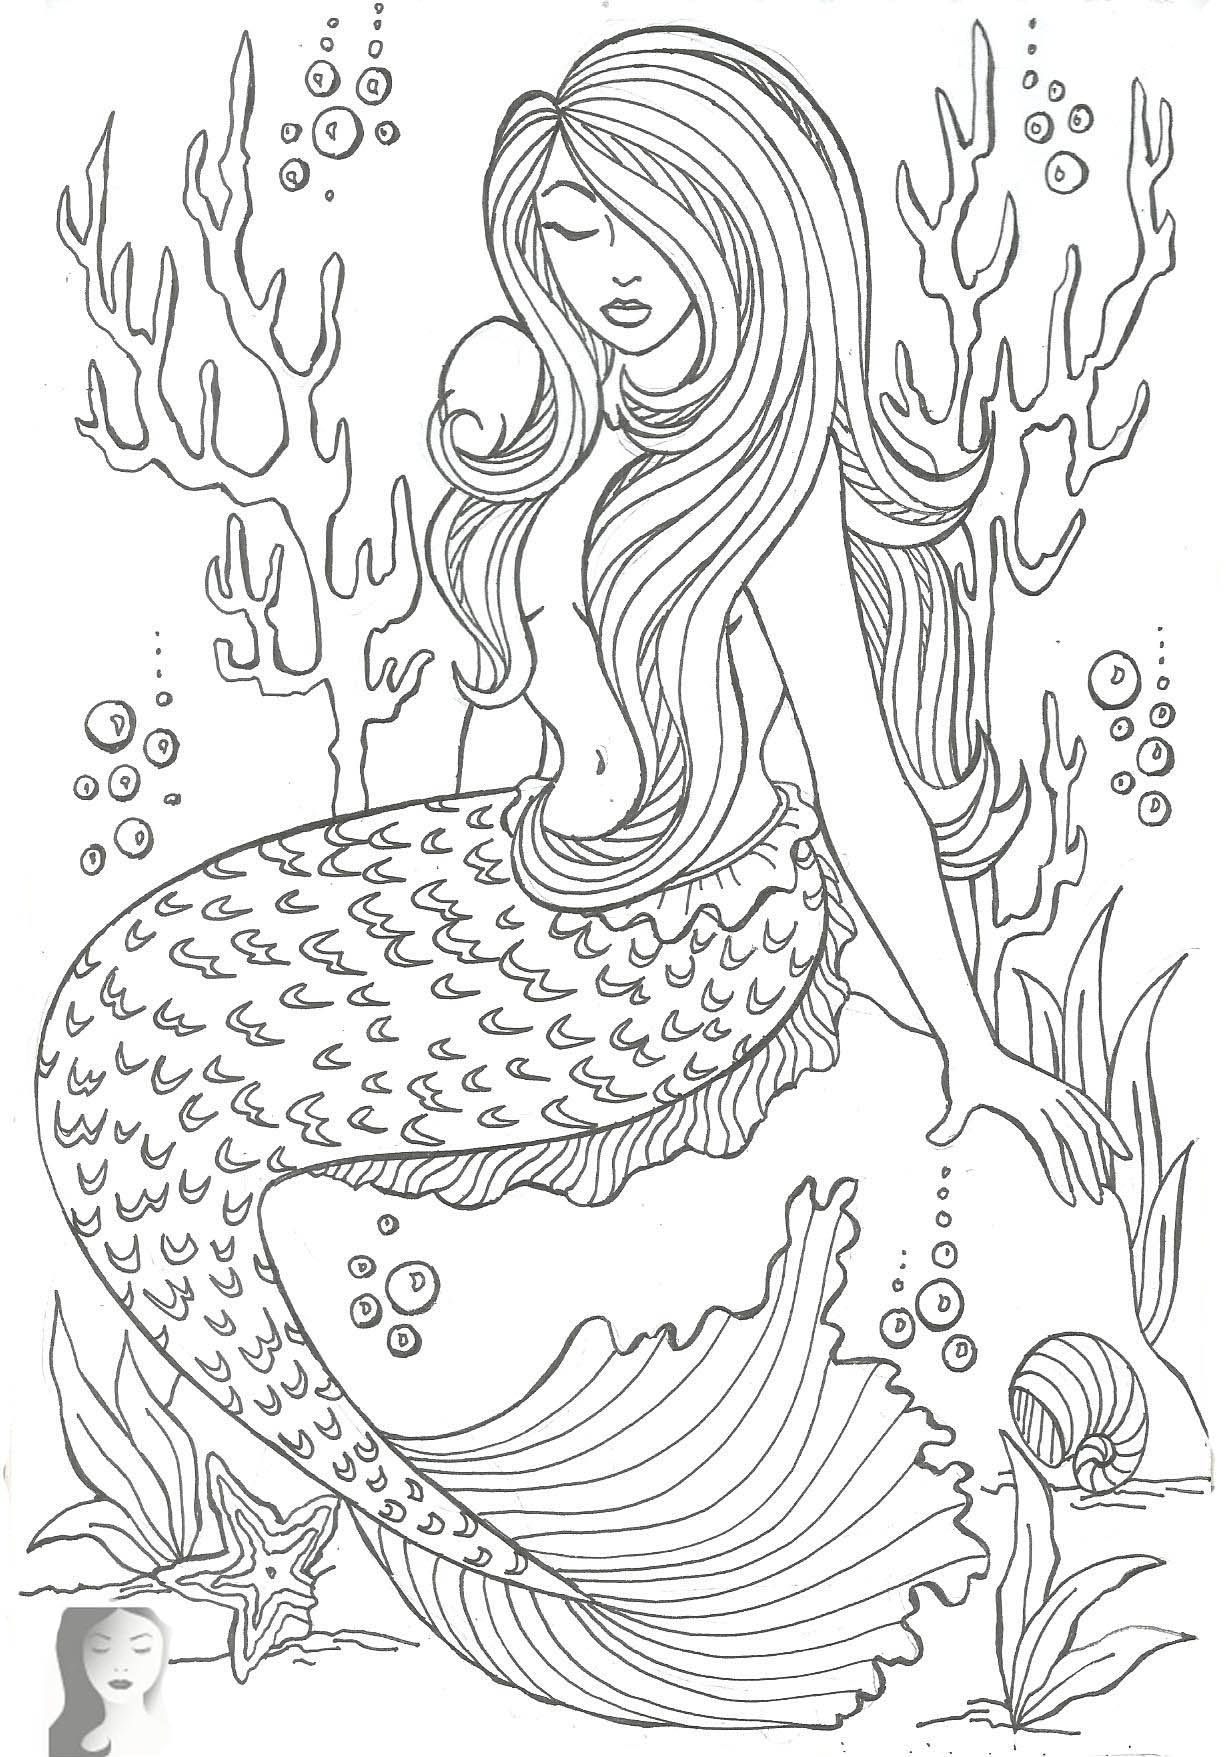 Mermaid Coloring Page Pages For Adults And